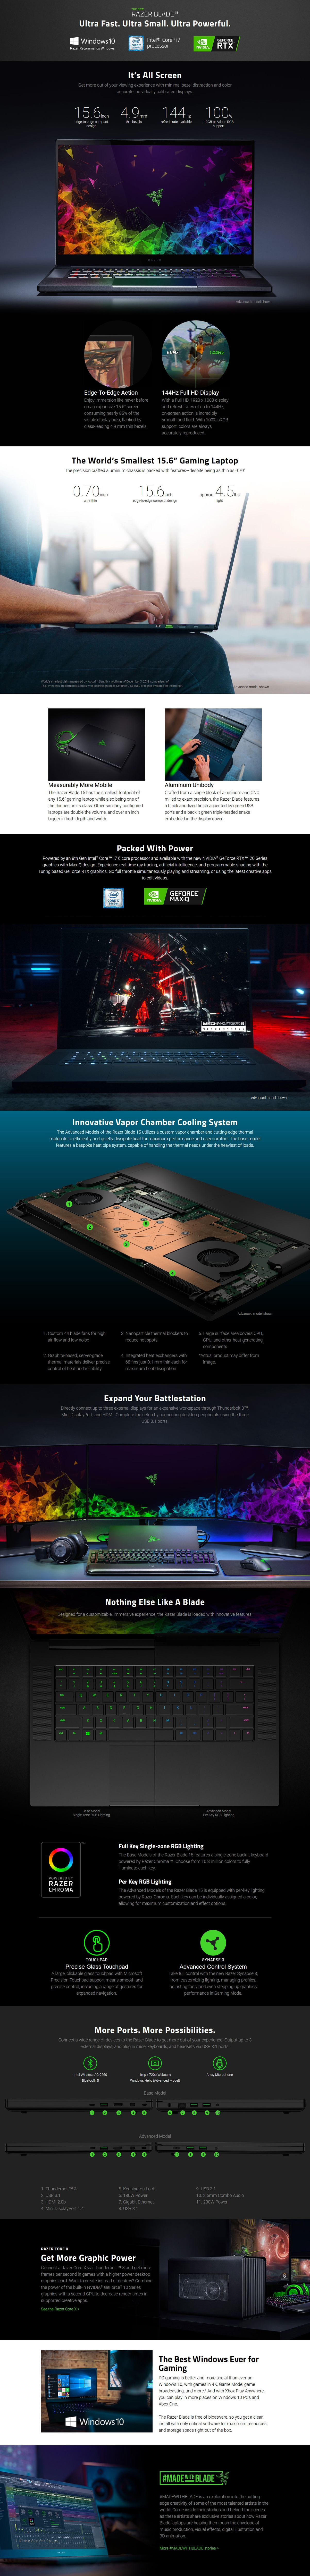 """A large marketing image providing additional information about the product Razer Blade Advanced 15.6"""" i7 RTX2070 Max-Q Windows 10 Gaming Notebook  - Additional alt info not provided"""